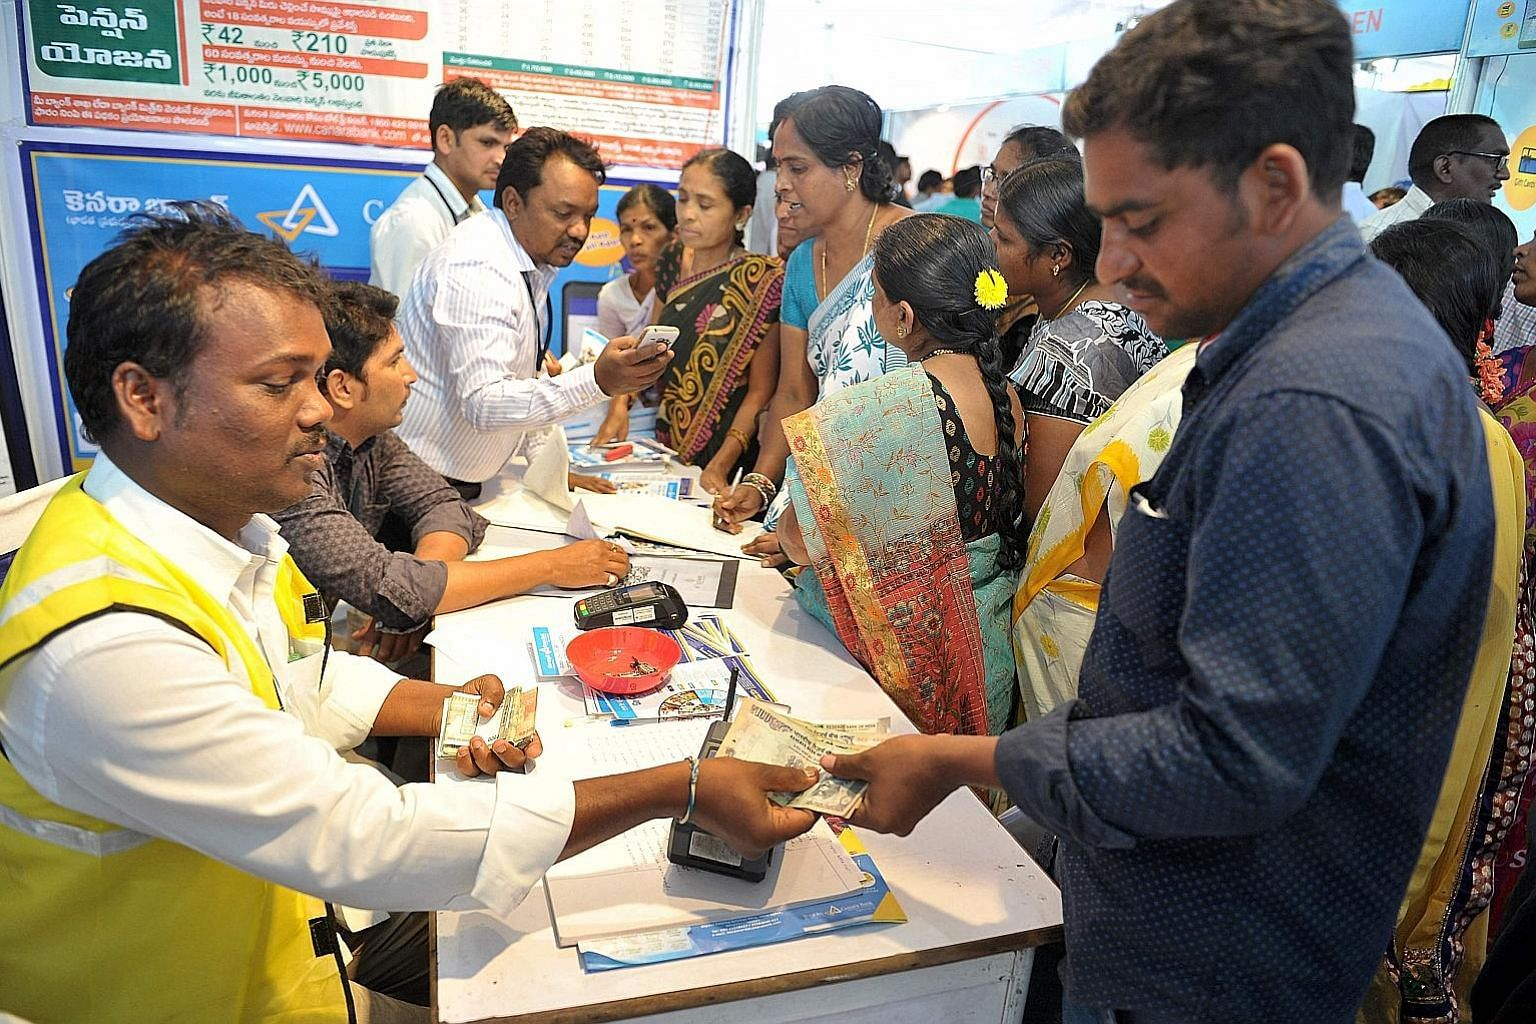 At an event to promote digital transactions, a visitor who had used Aadhaar to withdraw money from his bank account receives the cash from a bank employee. Held in January, it was part of the Digi Dhan Mela initiative to create a digital economy.